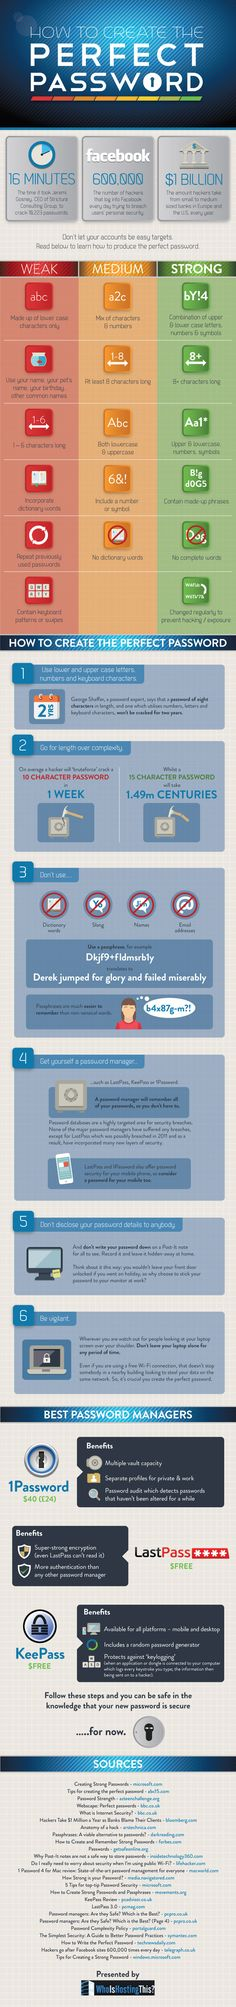 How to Create a Super Strong Password (Infographic) wedding parties, strong password, super strong, tech gadgets